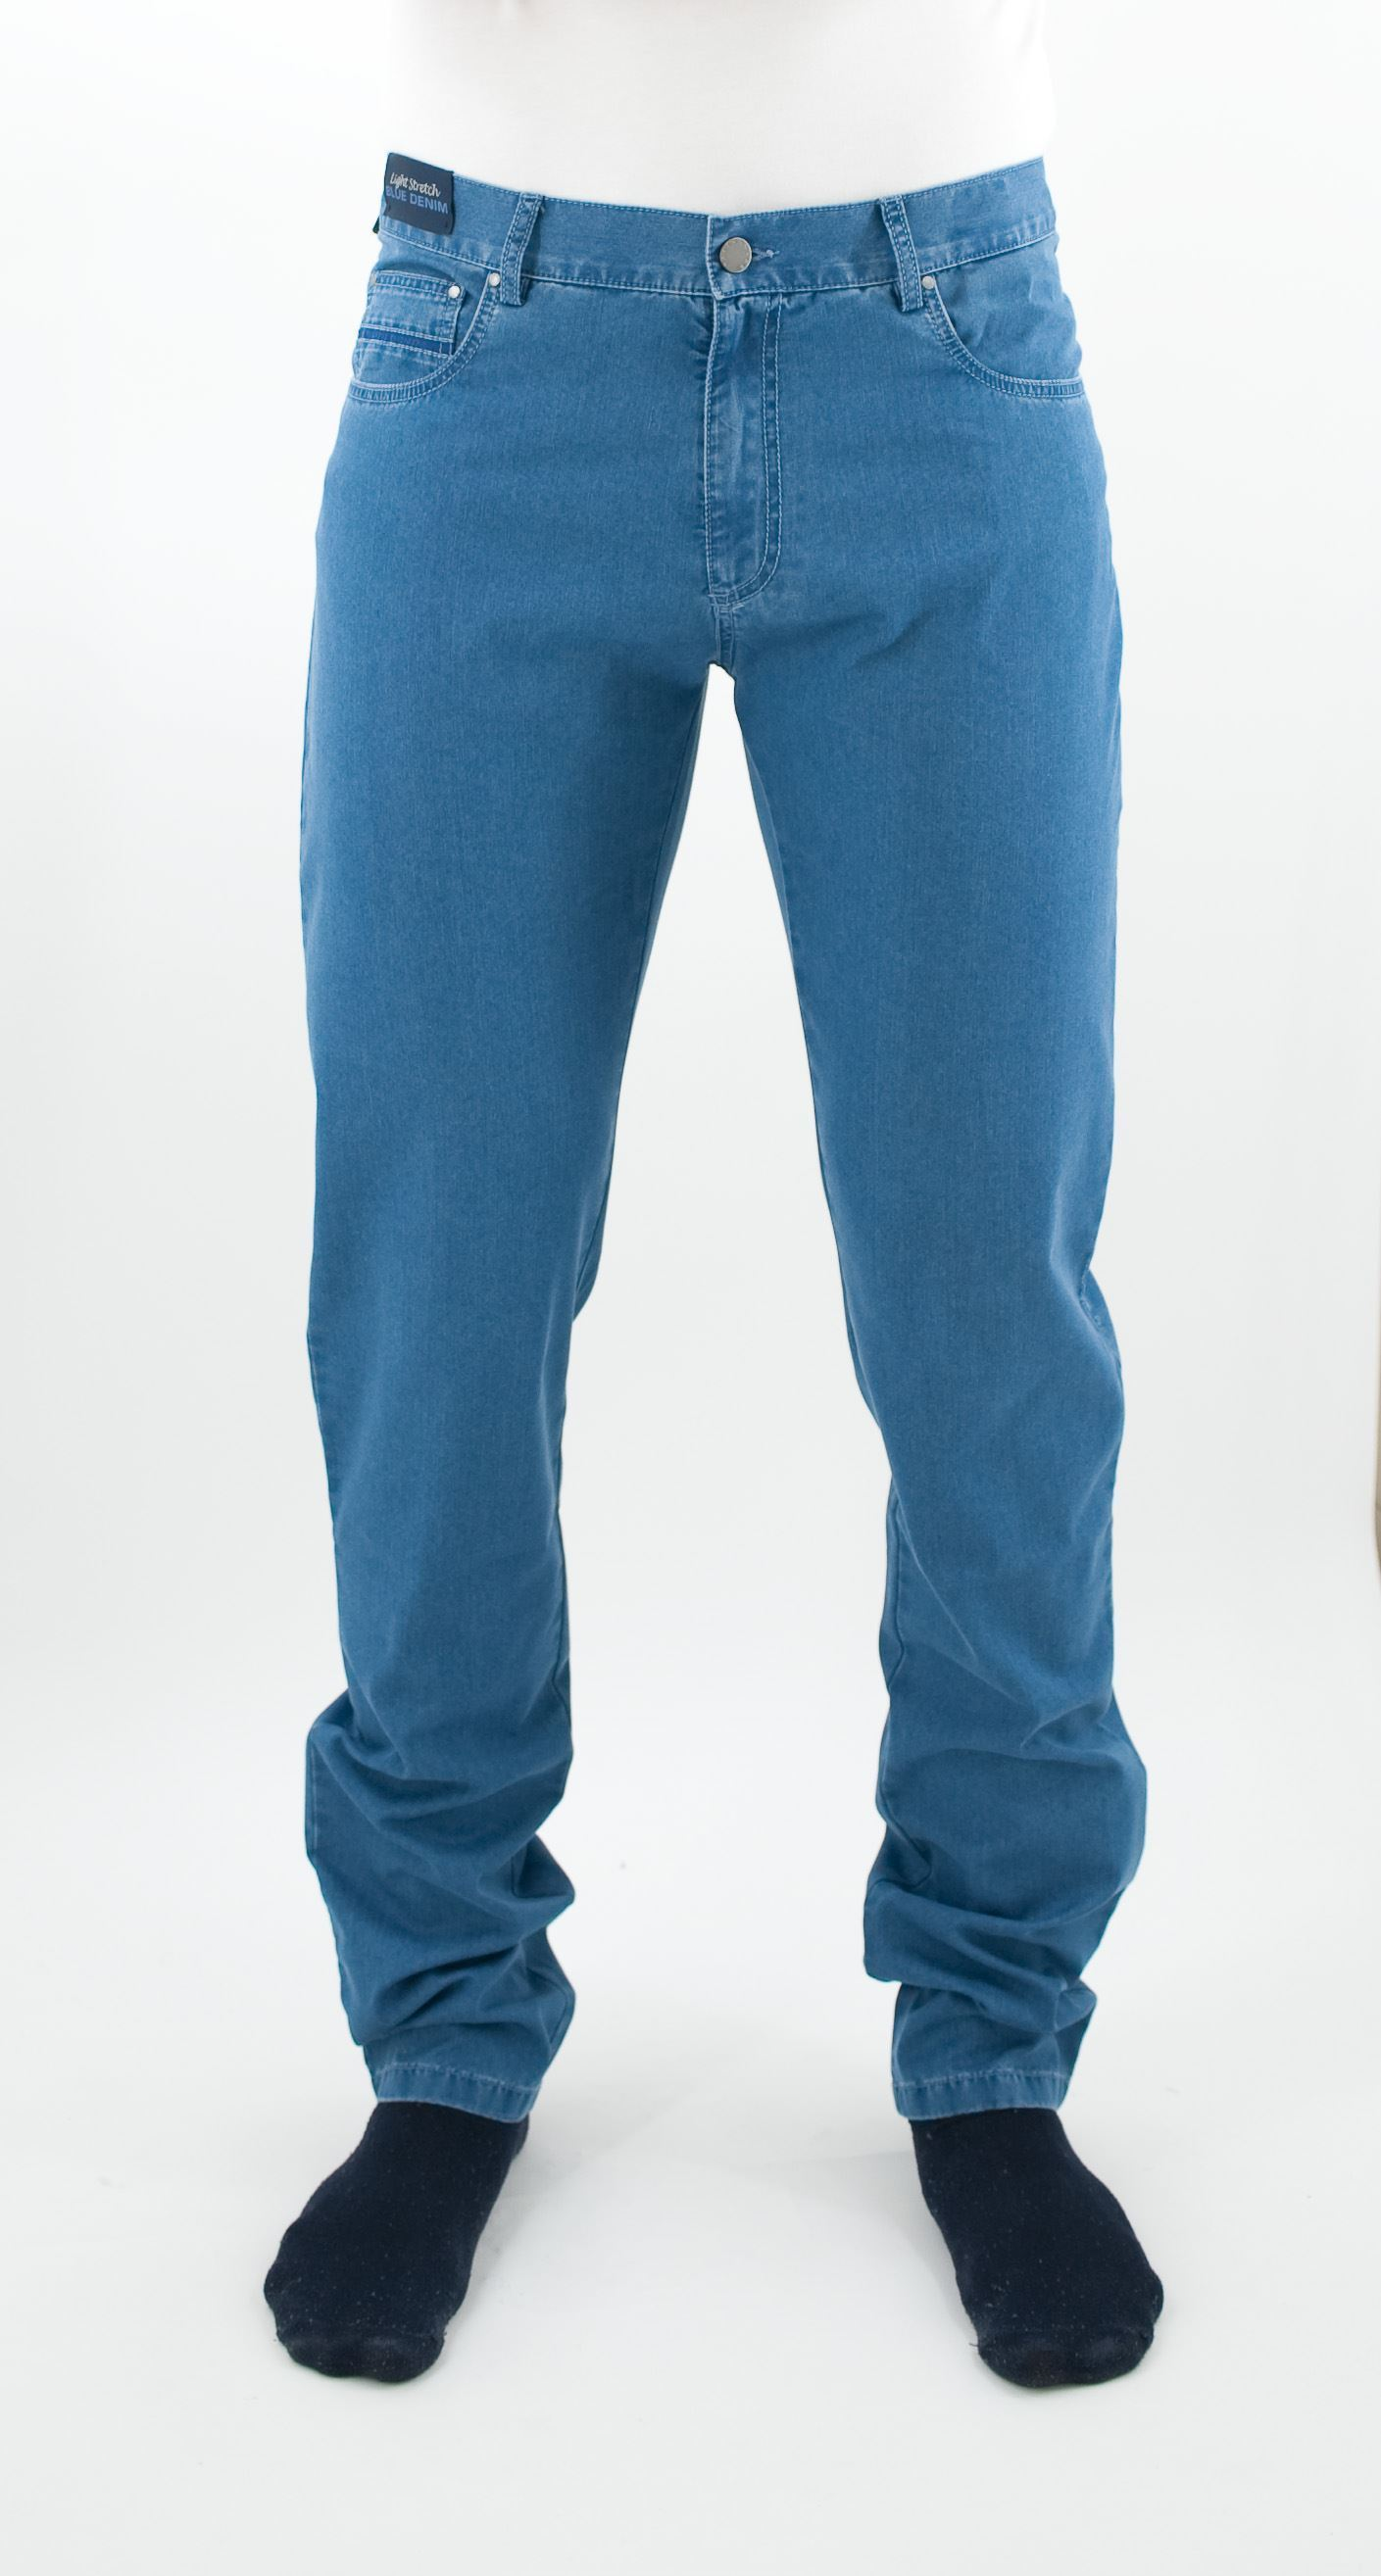 Picture of 5 pocket jeans blue